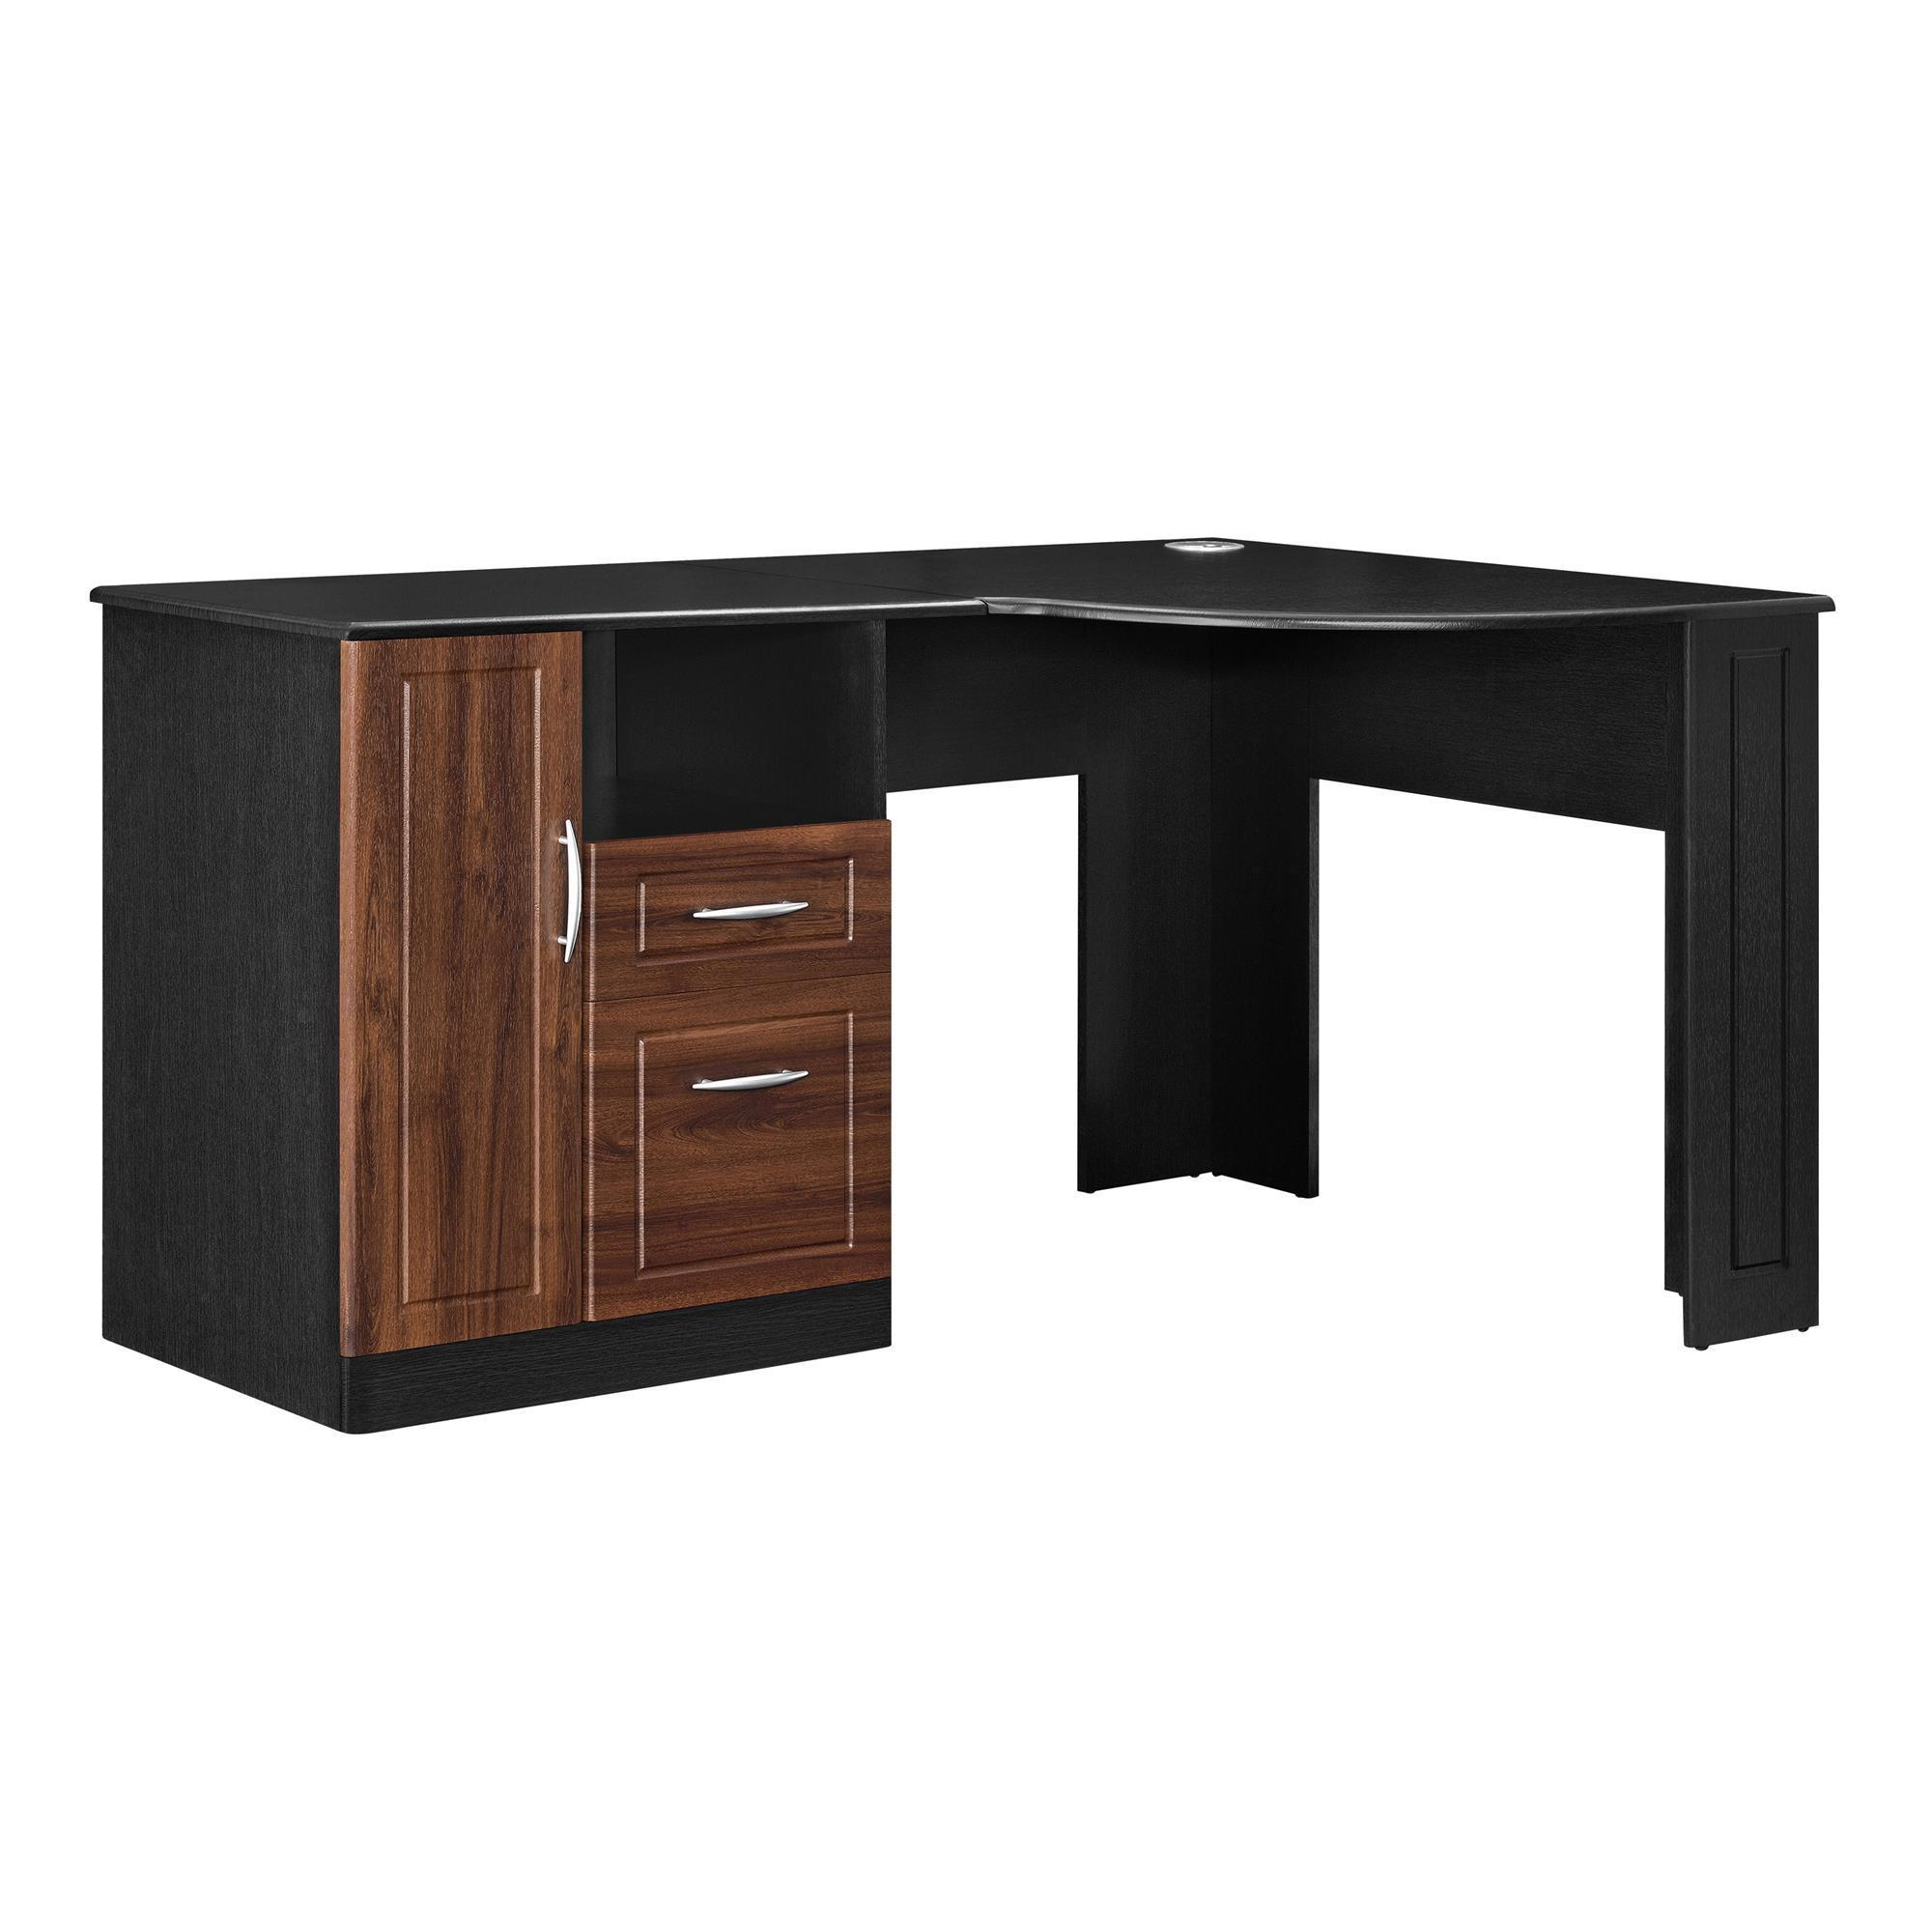 brown charming check modern ikea more lovely hand small corner galant furniture desk second computer at black